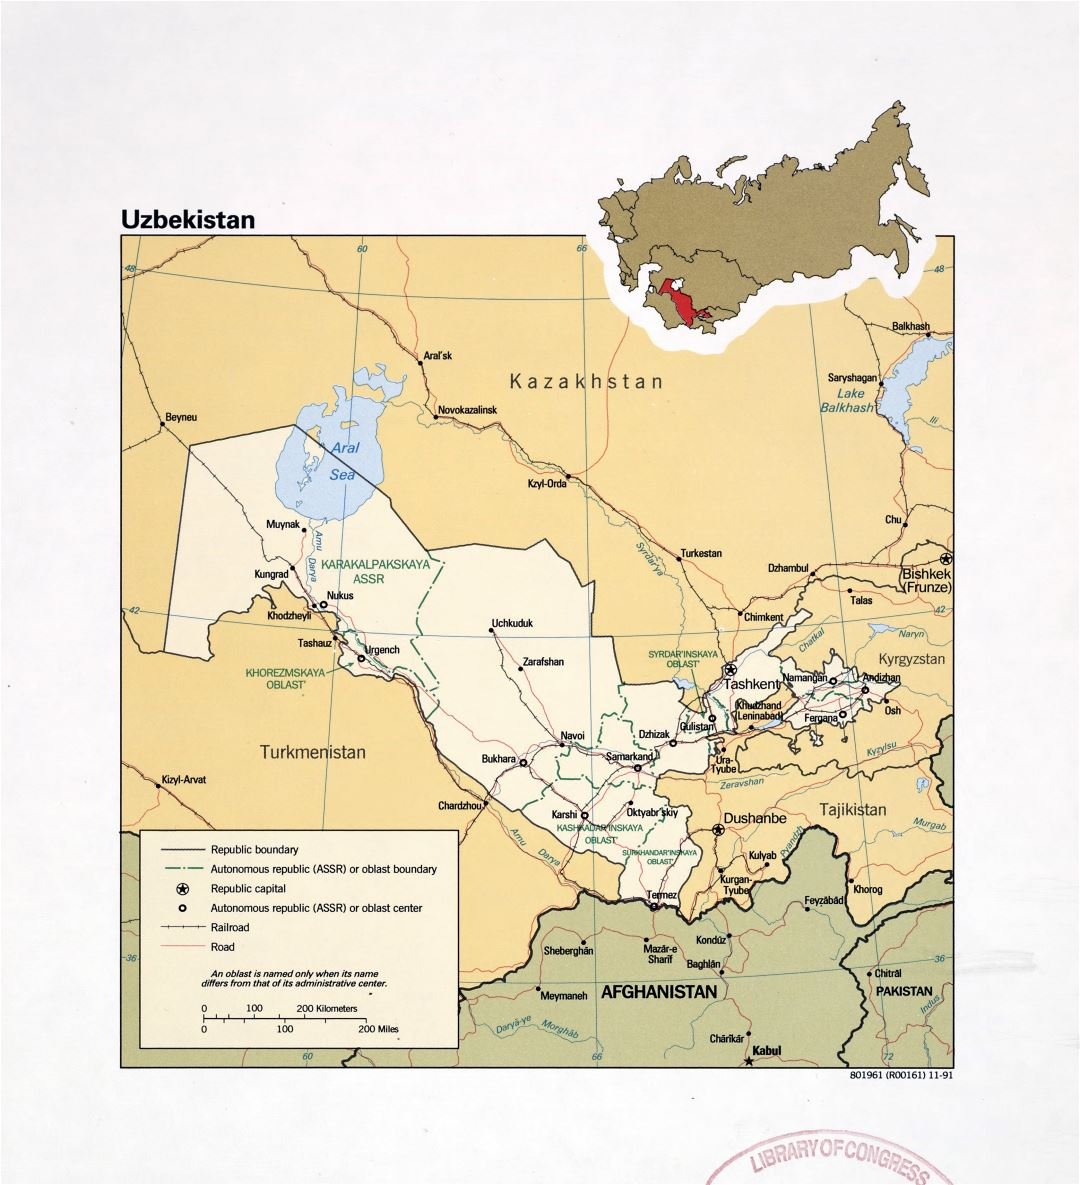 Large detailed political and administrative map of Uzbekistan with roads, railroads and major cities - 1991